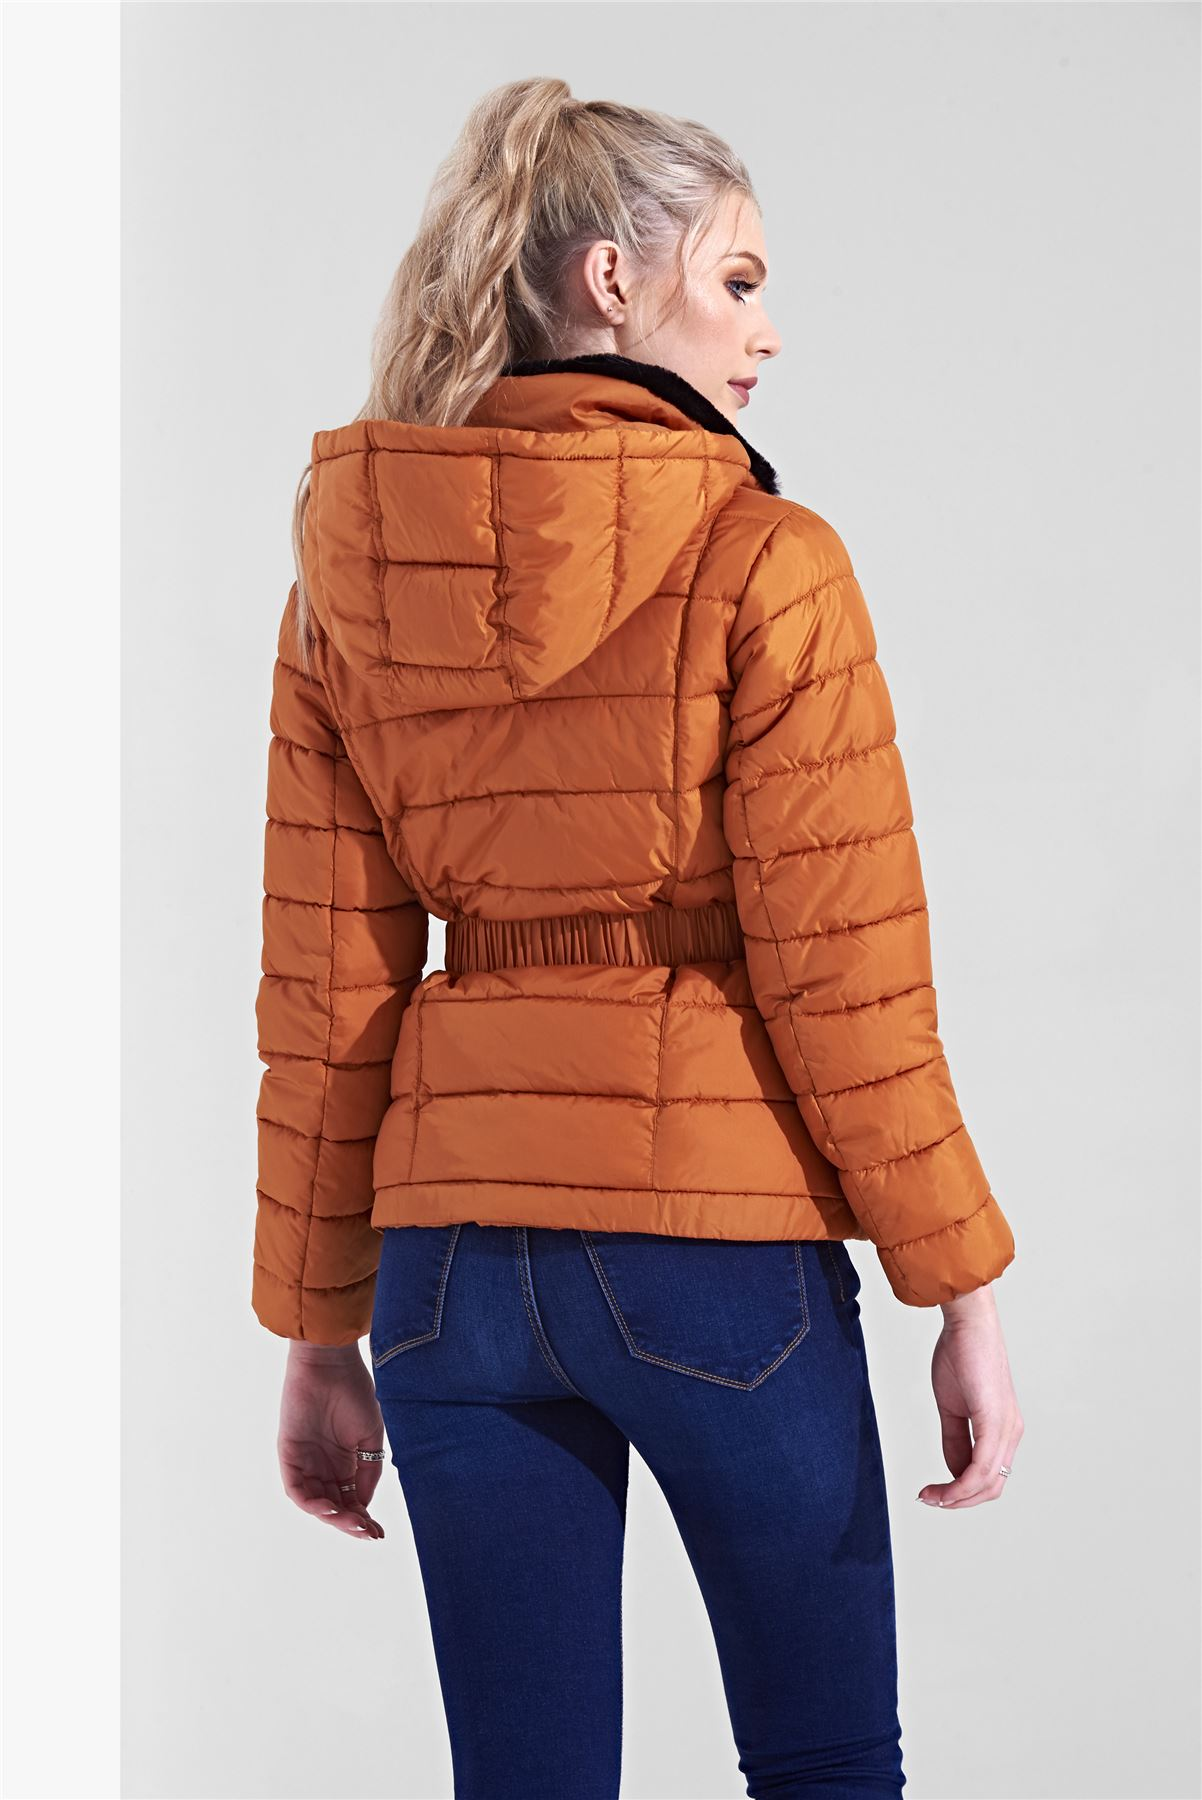 Womens-Ladies-Black-Hood-Belted-Fur-Collar-Zip-Up-Quilted-Puffer-Jacket-Coat thumbnail 6